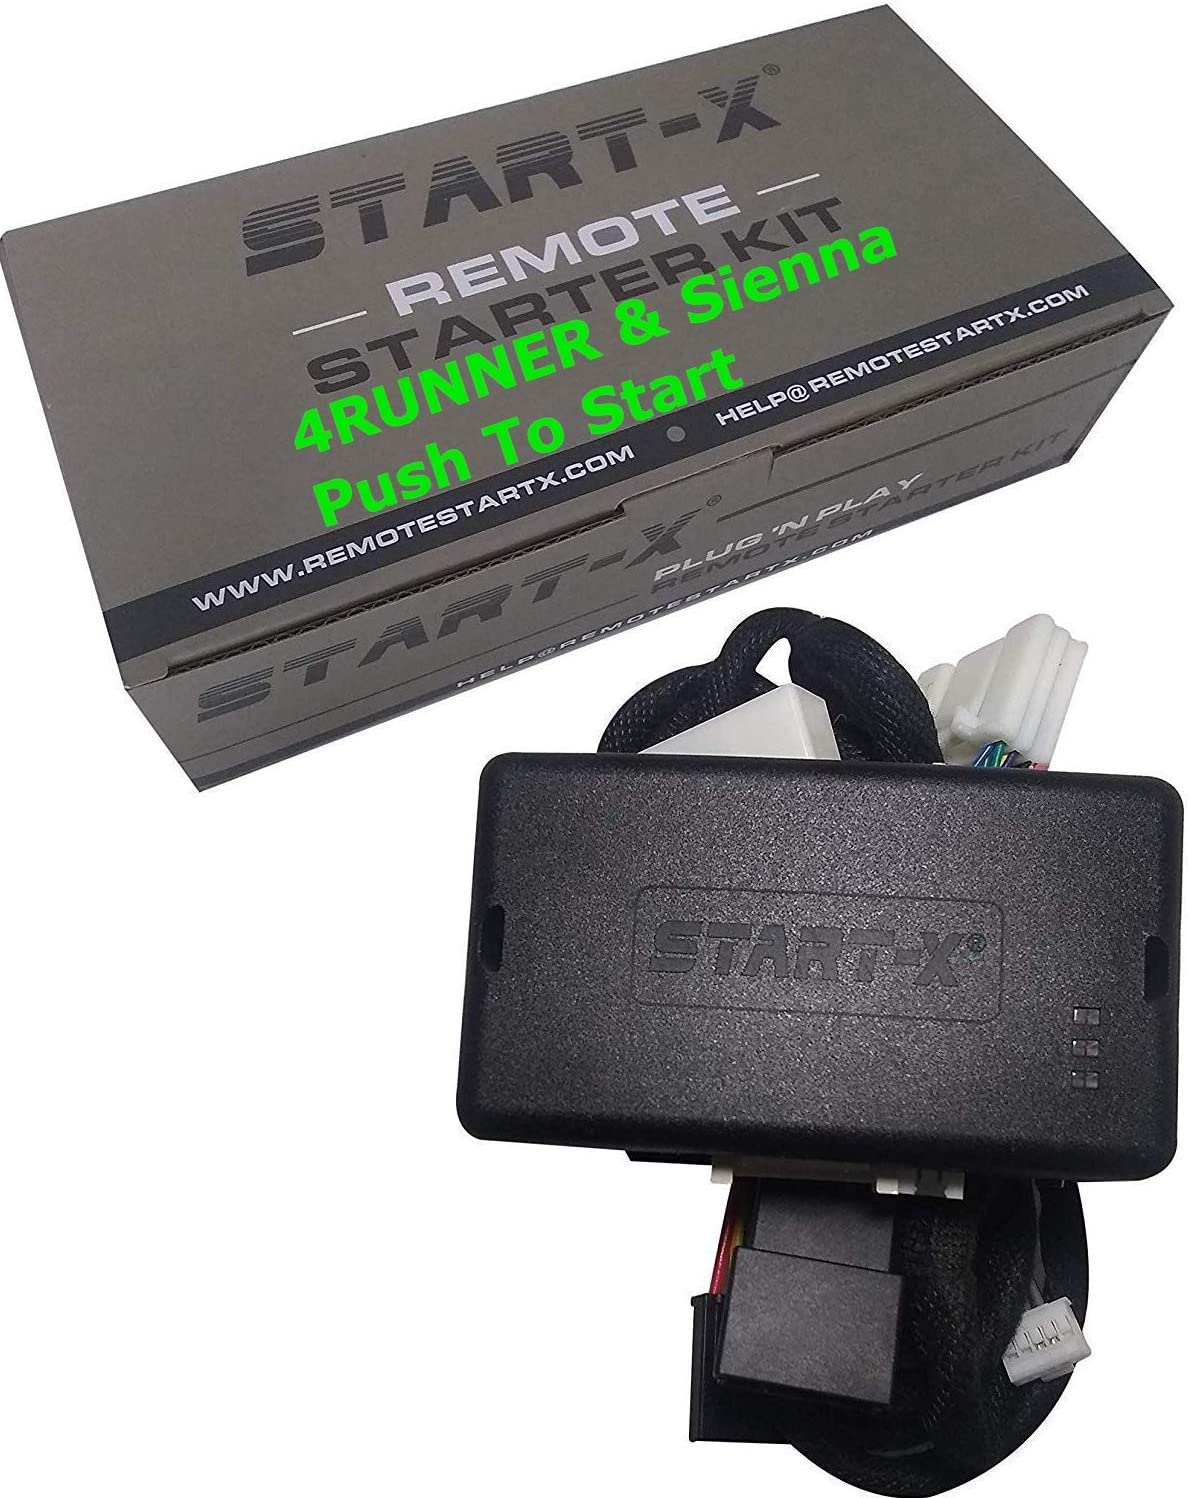 Start-X Plug N Play Remote Starter Sienna 4Runner 2 Max 67% OFF for Miami Mall 2010-19